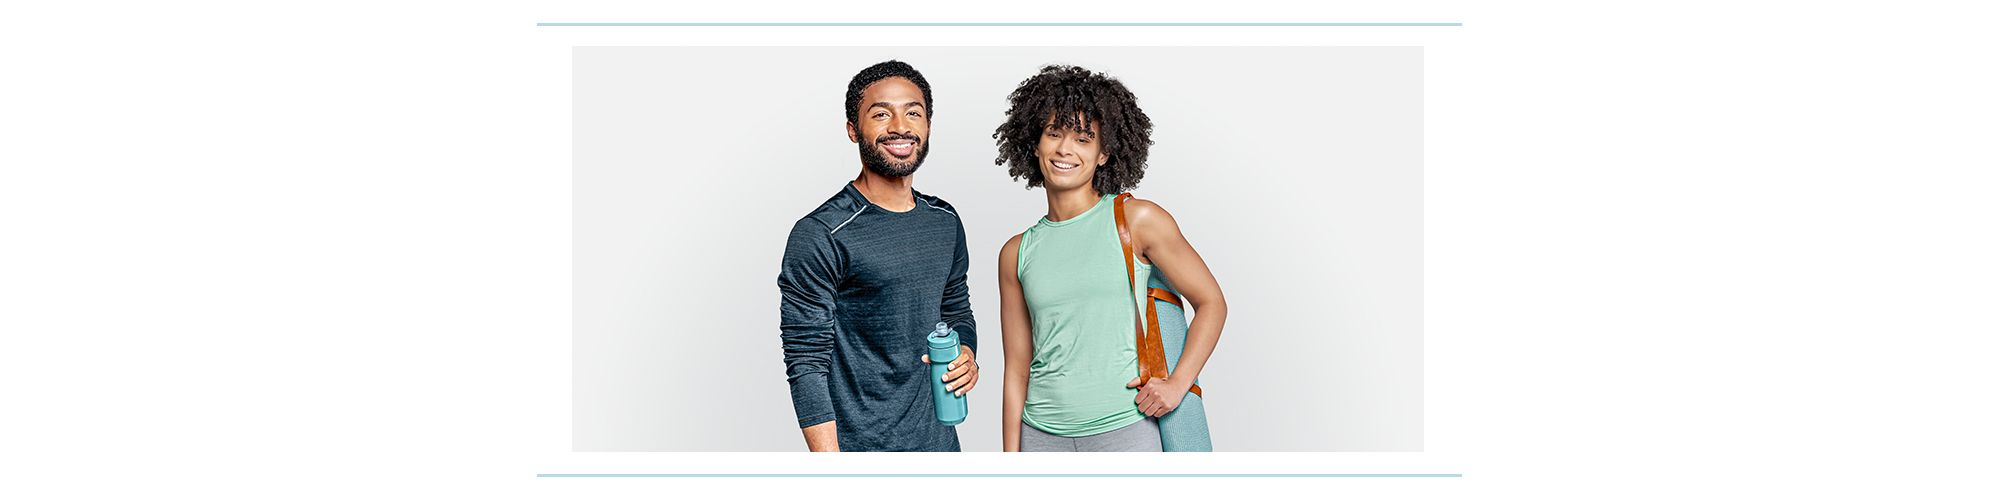 Two people wearing workout clothes and carrying workout gear.